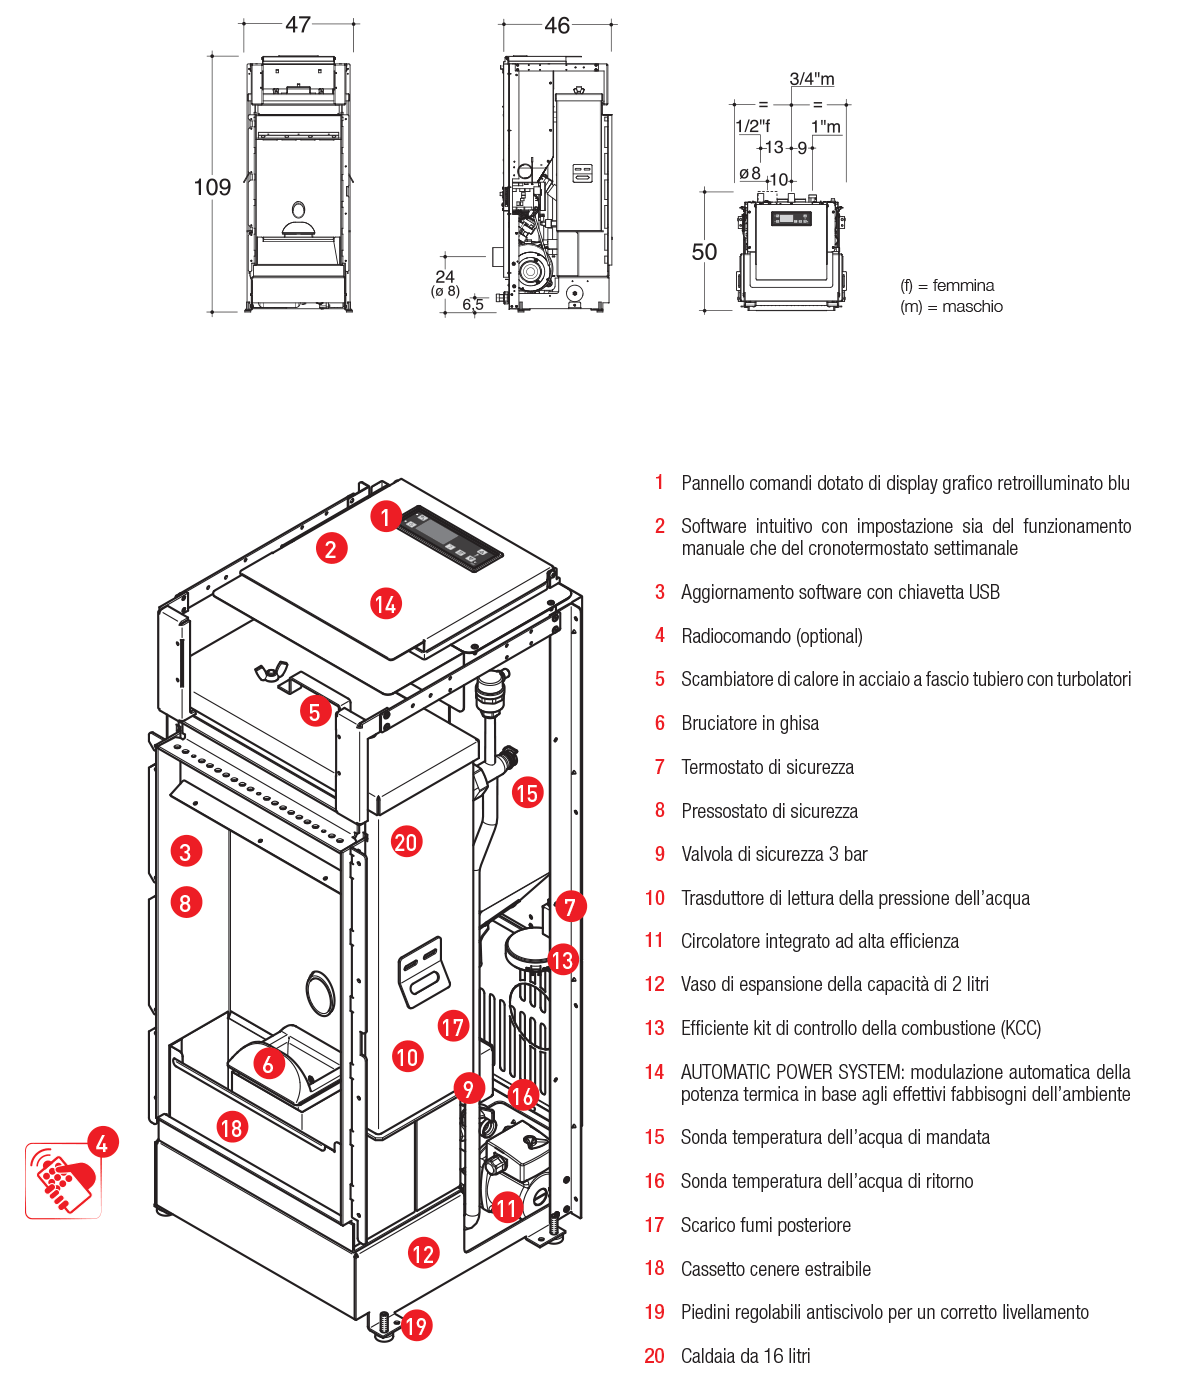 pellet stove for water heating